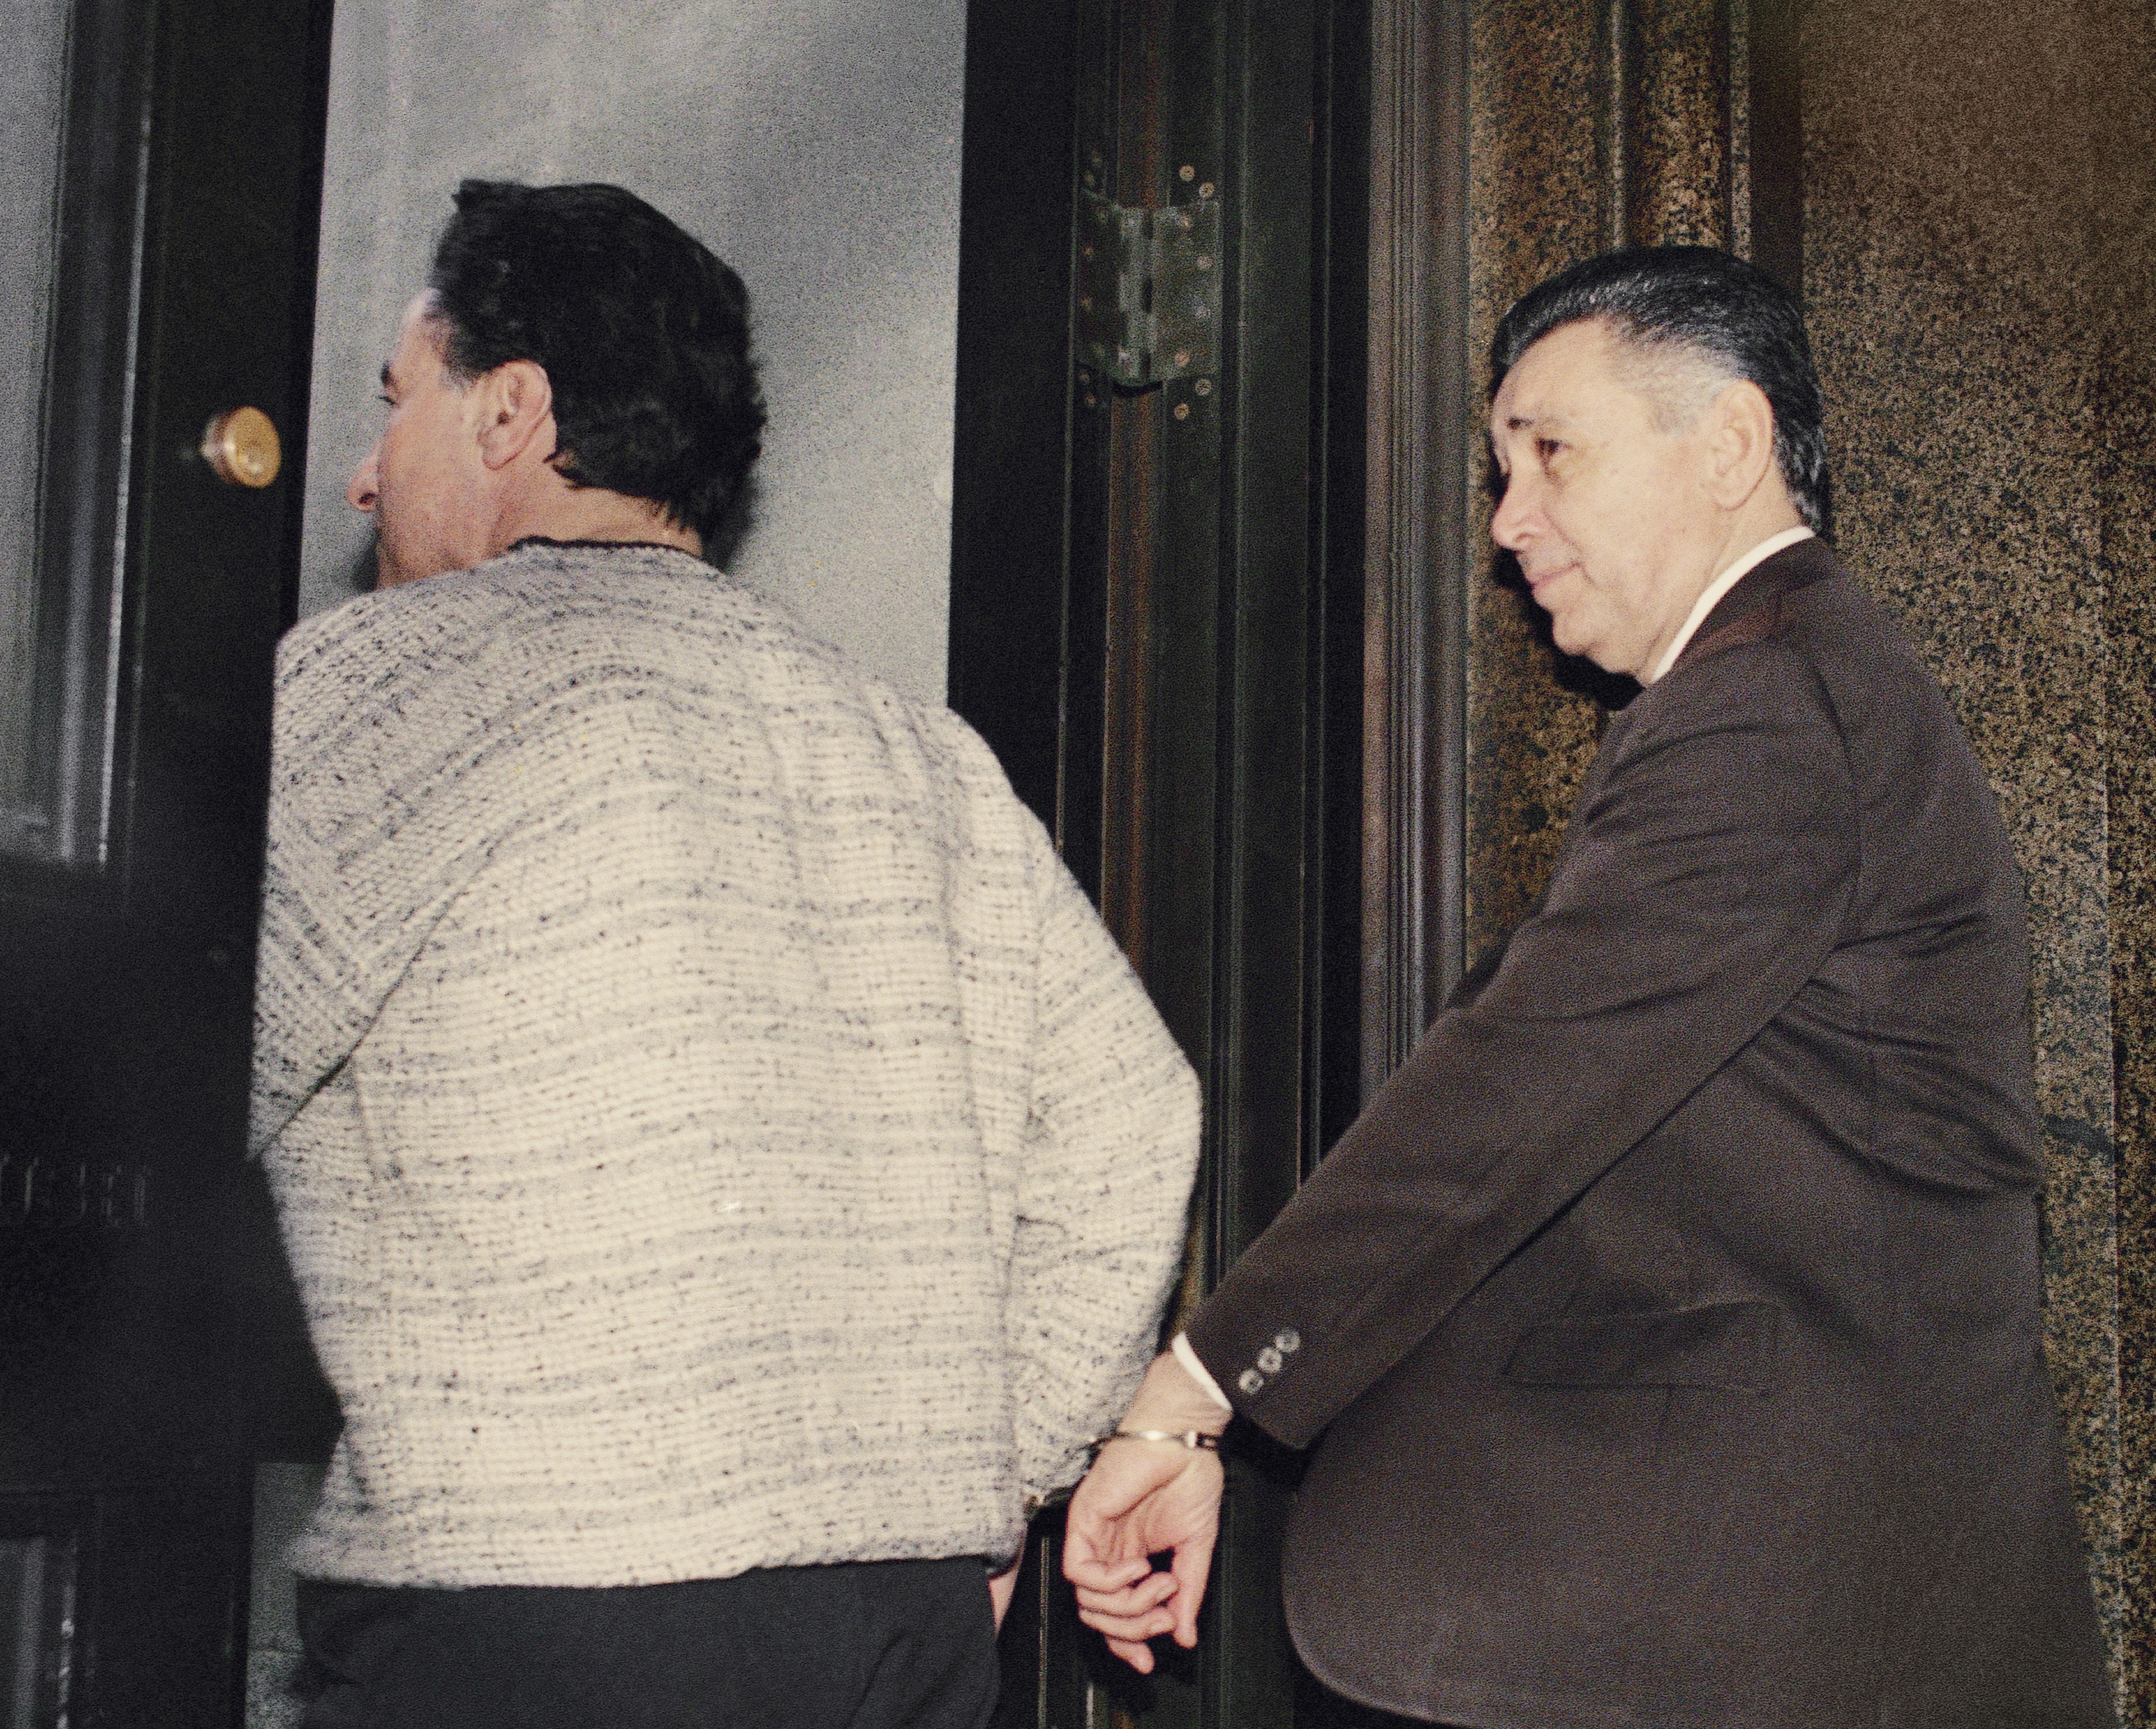 """Reputed crime boss Nicodemo """"Little Nicky"""" Scarfo is led from Philadelphia Common Pleas Court, April 6, 1989, after being sentenced to life in prison along with seven of his associates. The prosecution was seeking the death penalty, but Judge Eugene Clarke announced his decision in the 1985 murder case of gangster Frank D'Alfonso which Scarfo and his associates were found guilty. (AP Photo/Charles Krupa)"""